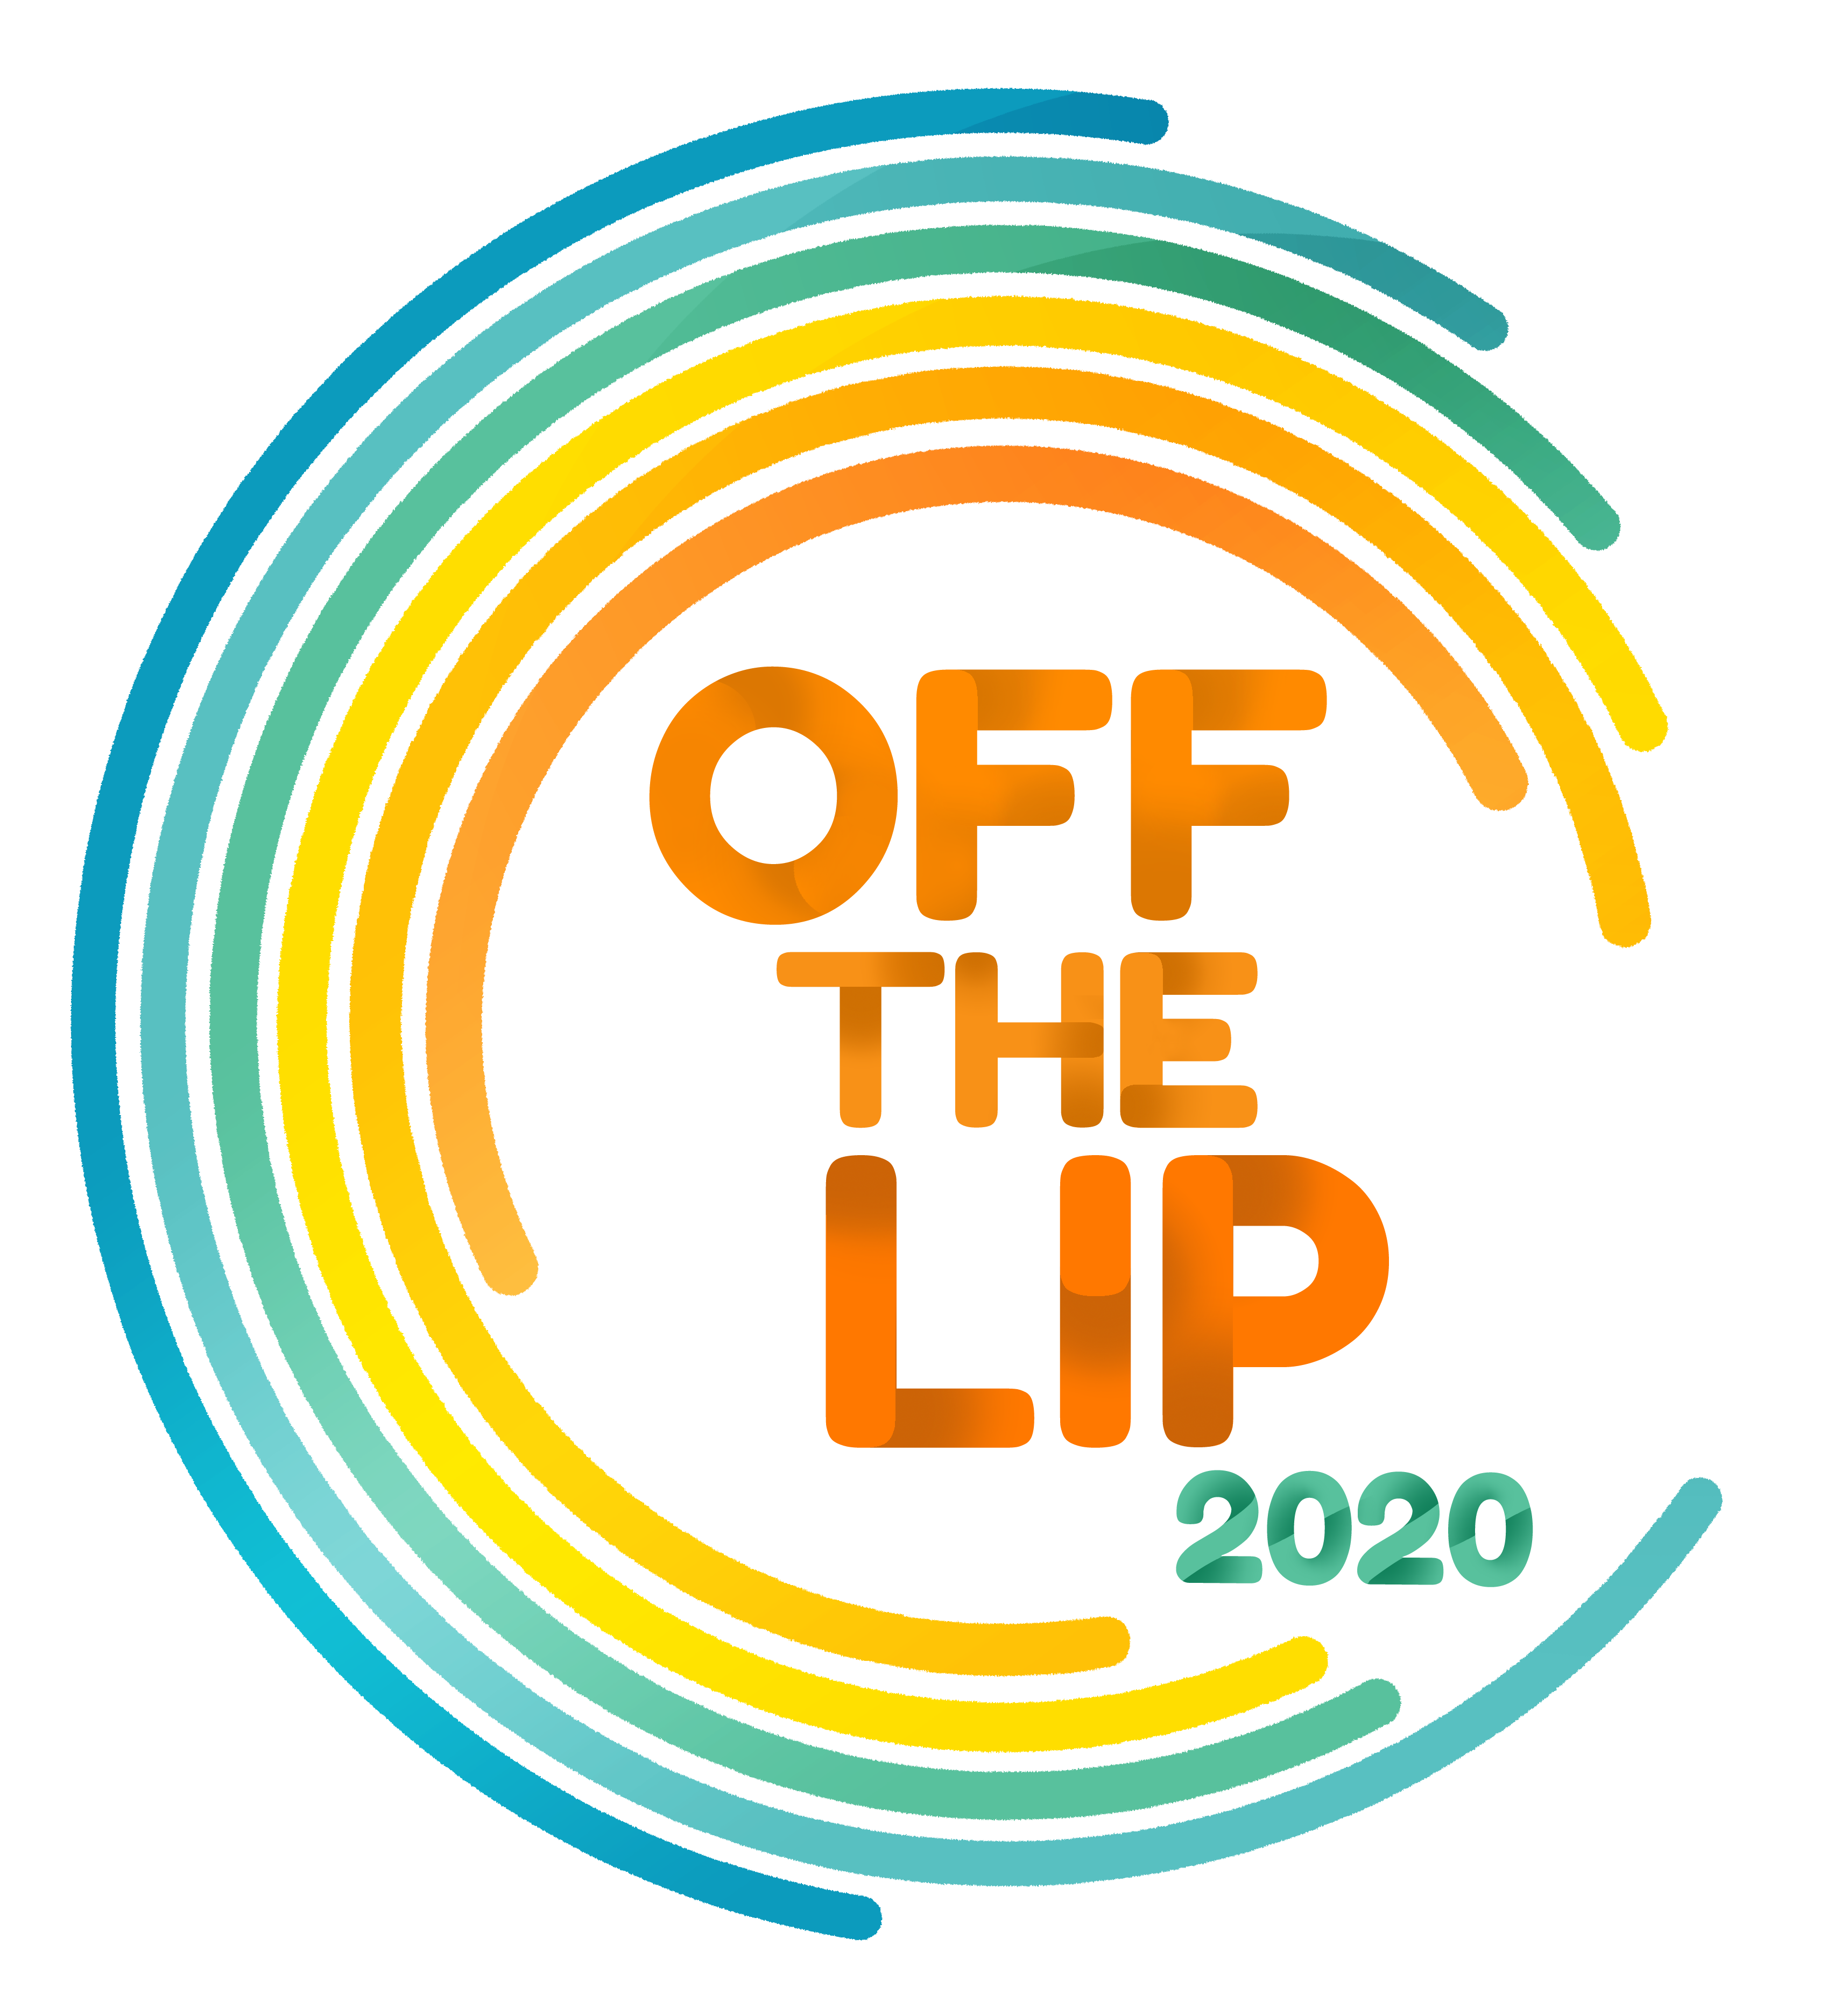 Off the Lip 2020 Conference will be held on 24-25 January 2020.